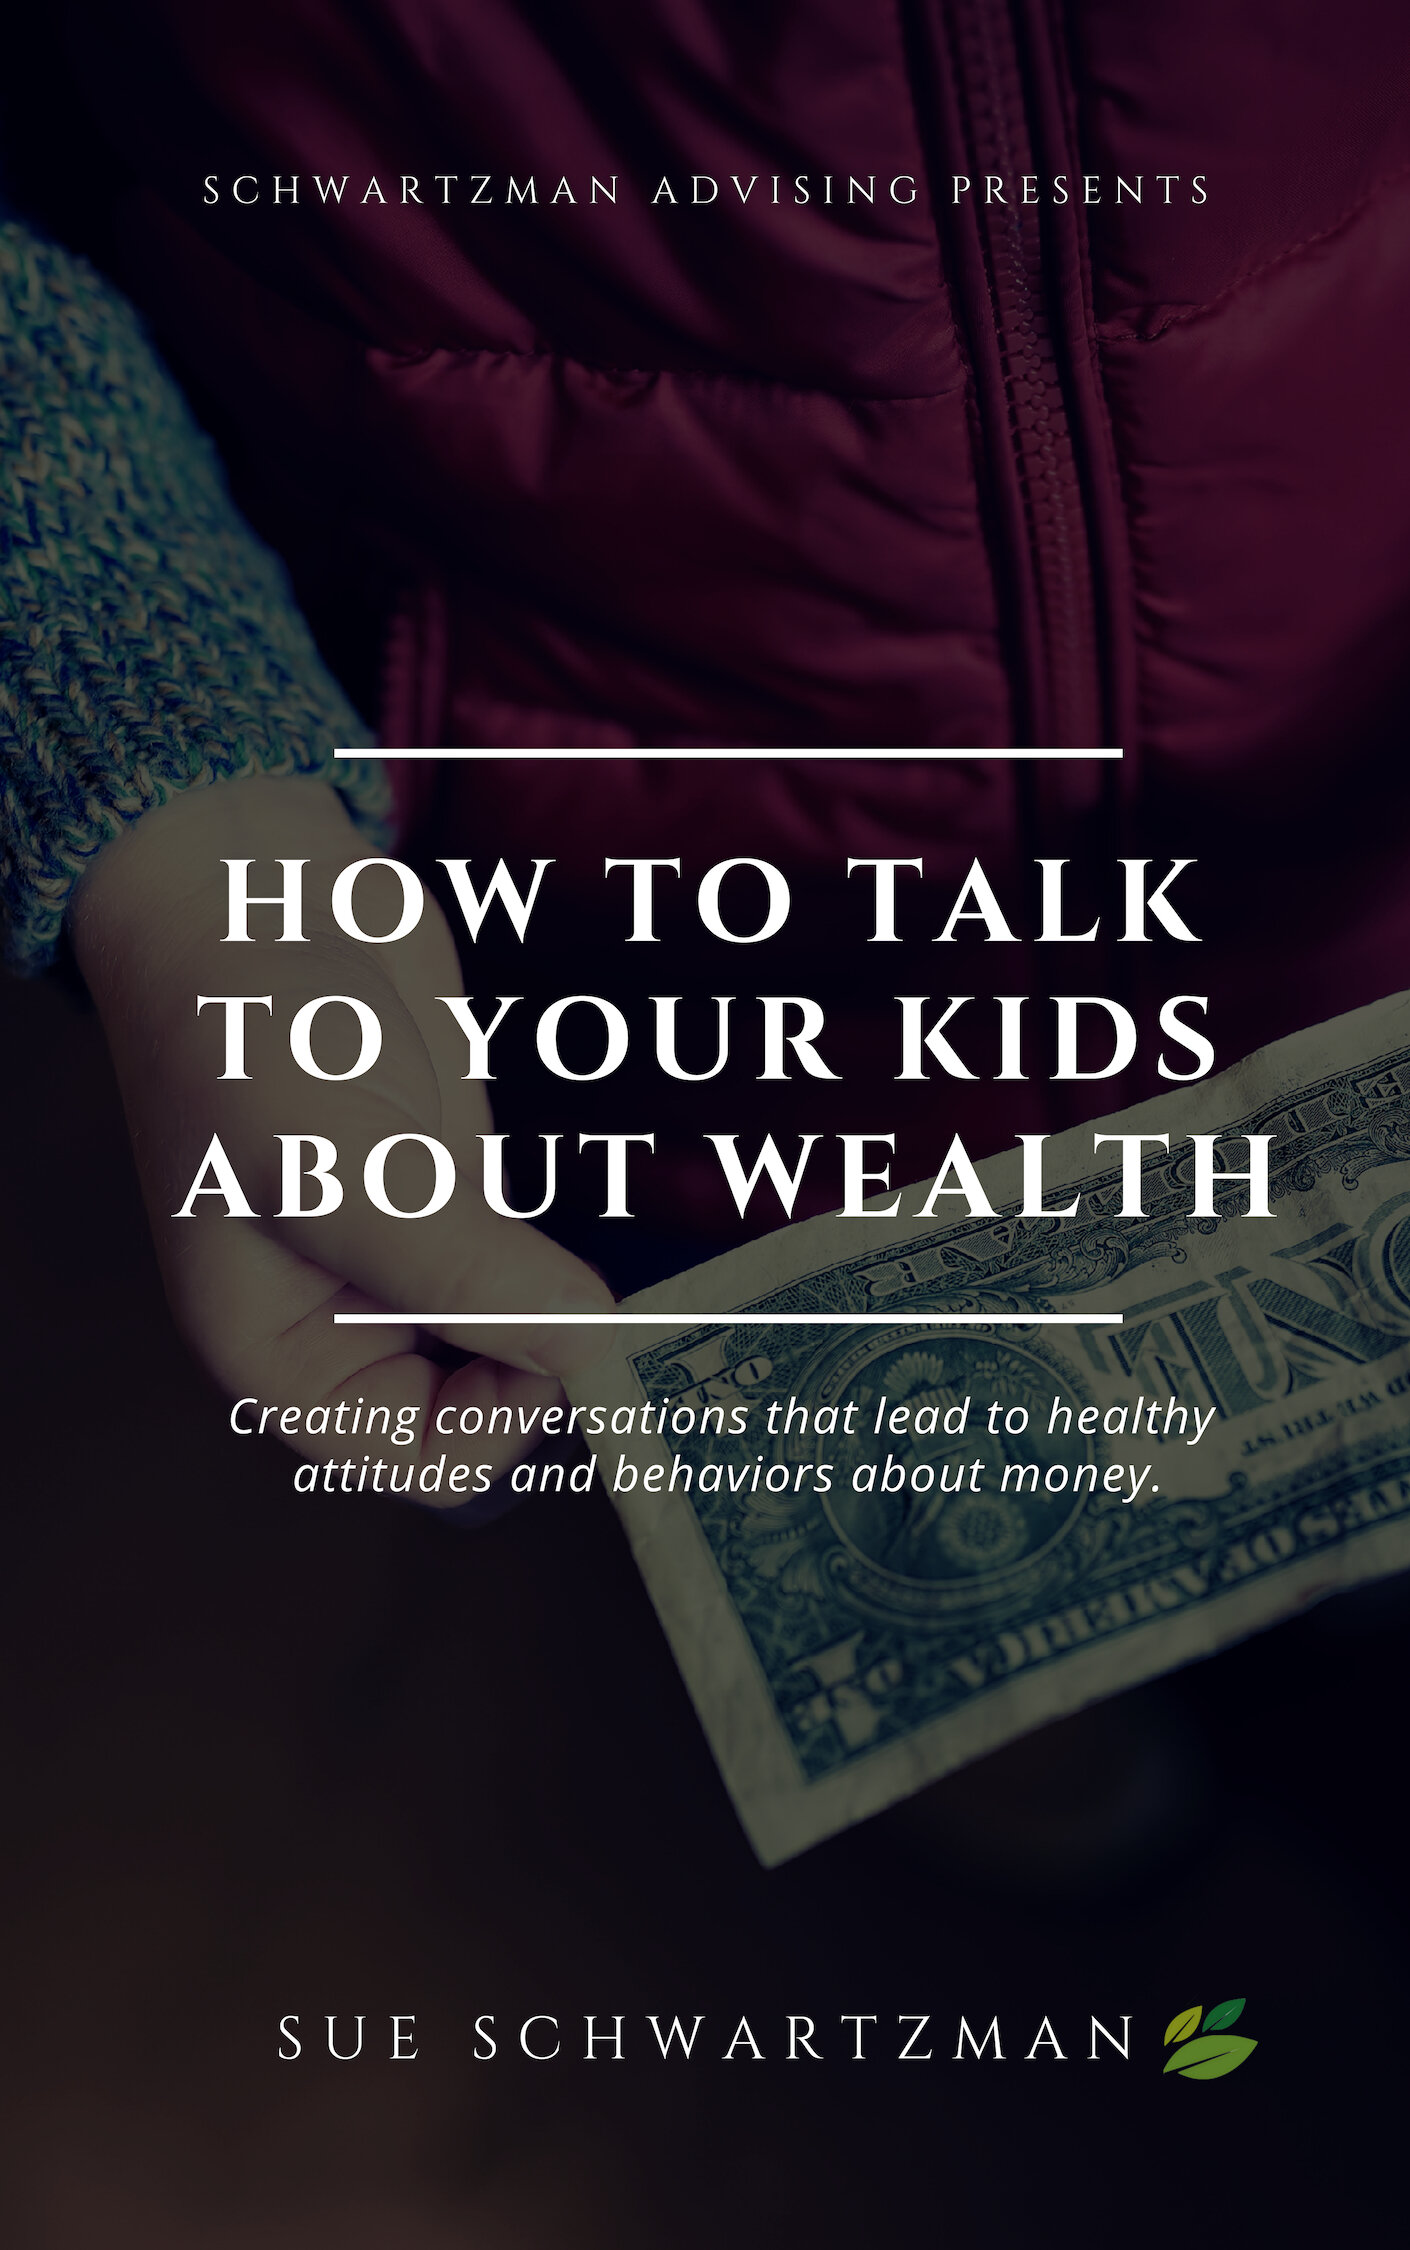 Download the FREE E-Book: - HOW TO TALK TO YOUR KIDS ABOUT WEALTHGet my 8 top tips and practical tools for creating conversations that lead to healthy attitudes and behaviors around money.